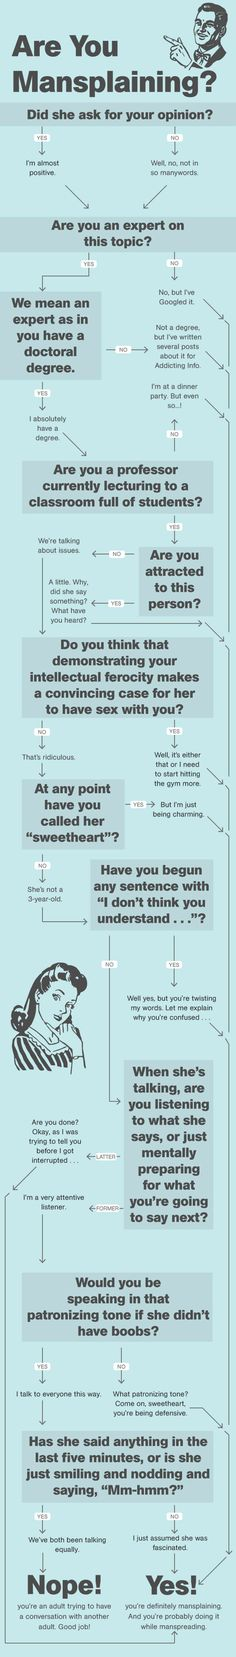 The Man's Guide To Mansplaining http://www.menshealth.com/guy-wisdom/mansplaining?utm_source=facebook.com